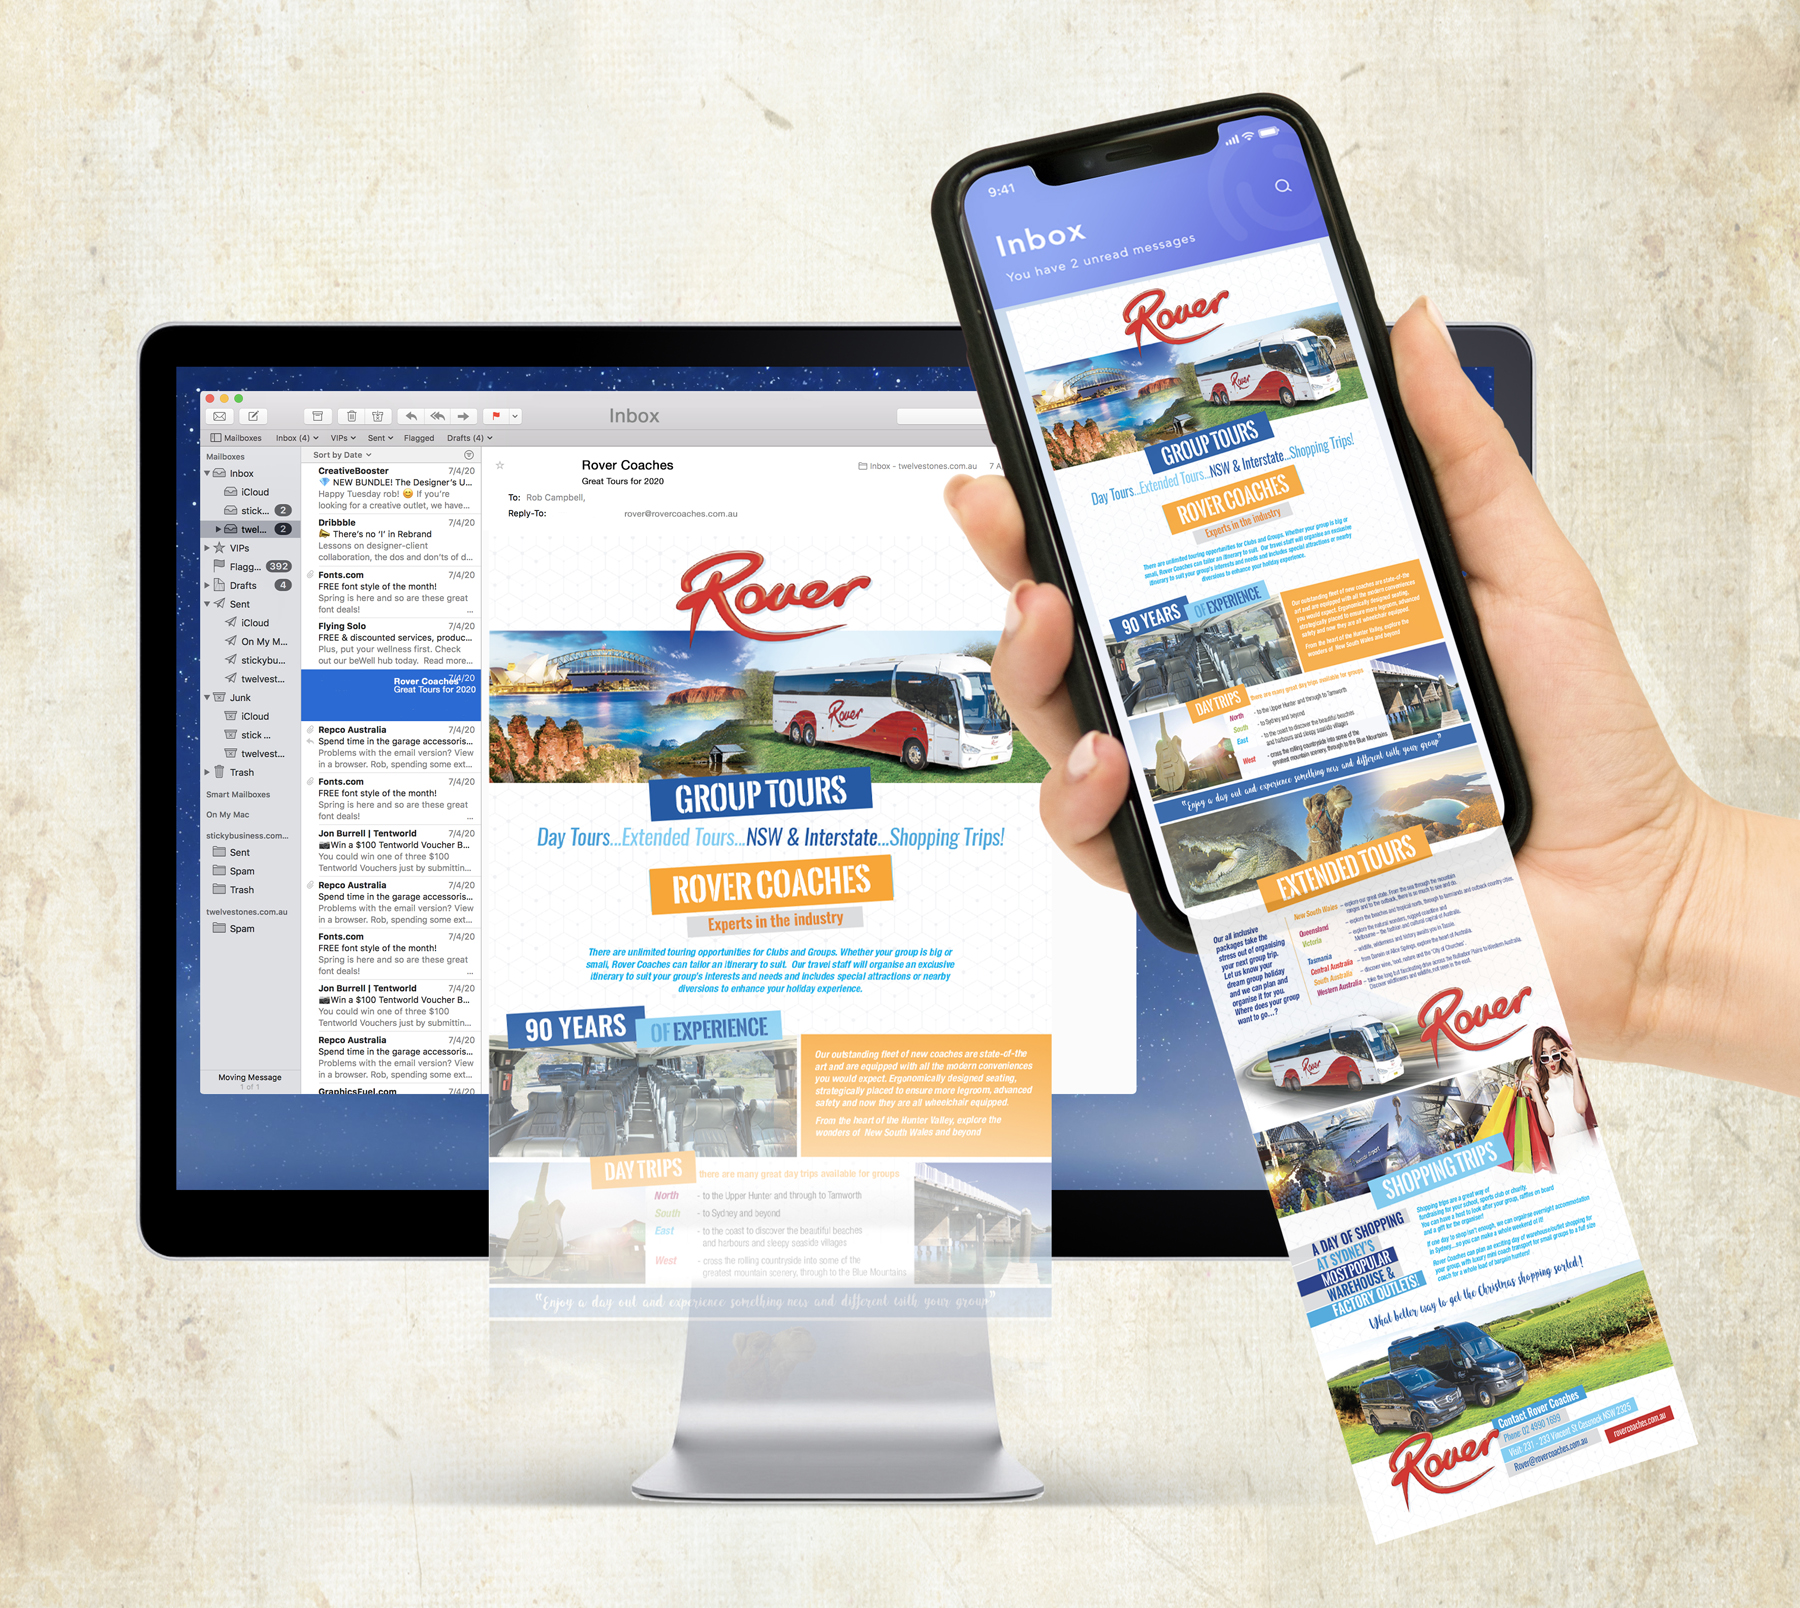 Rover Coaches Tour Promotion on iMac and iPhone